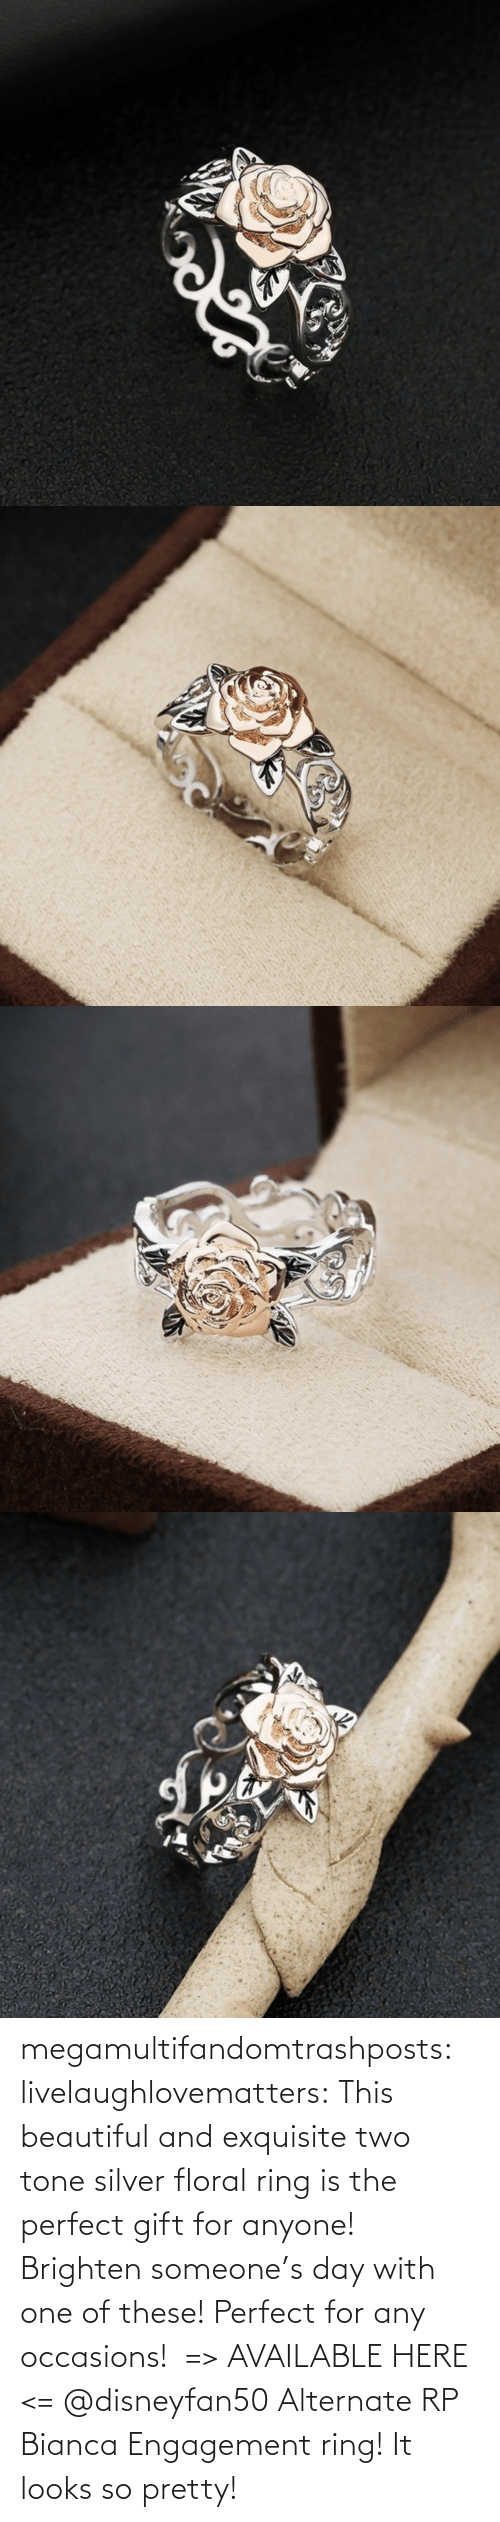 Silver: megamultifandomtrashposts:  livelaughlovematters: This beautiful and exquisite two tone silver floral ring is the perfect gift for anyone! Brighten someone's day with one of these! Perfect for any occasions!  => AVAILABLE HERE <=    @disneyfan50 Alternate RP Bianca Engagement ring! It looks so pretty!